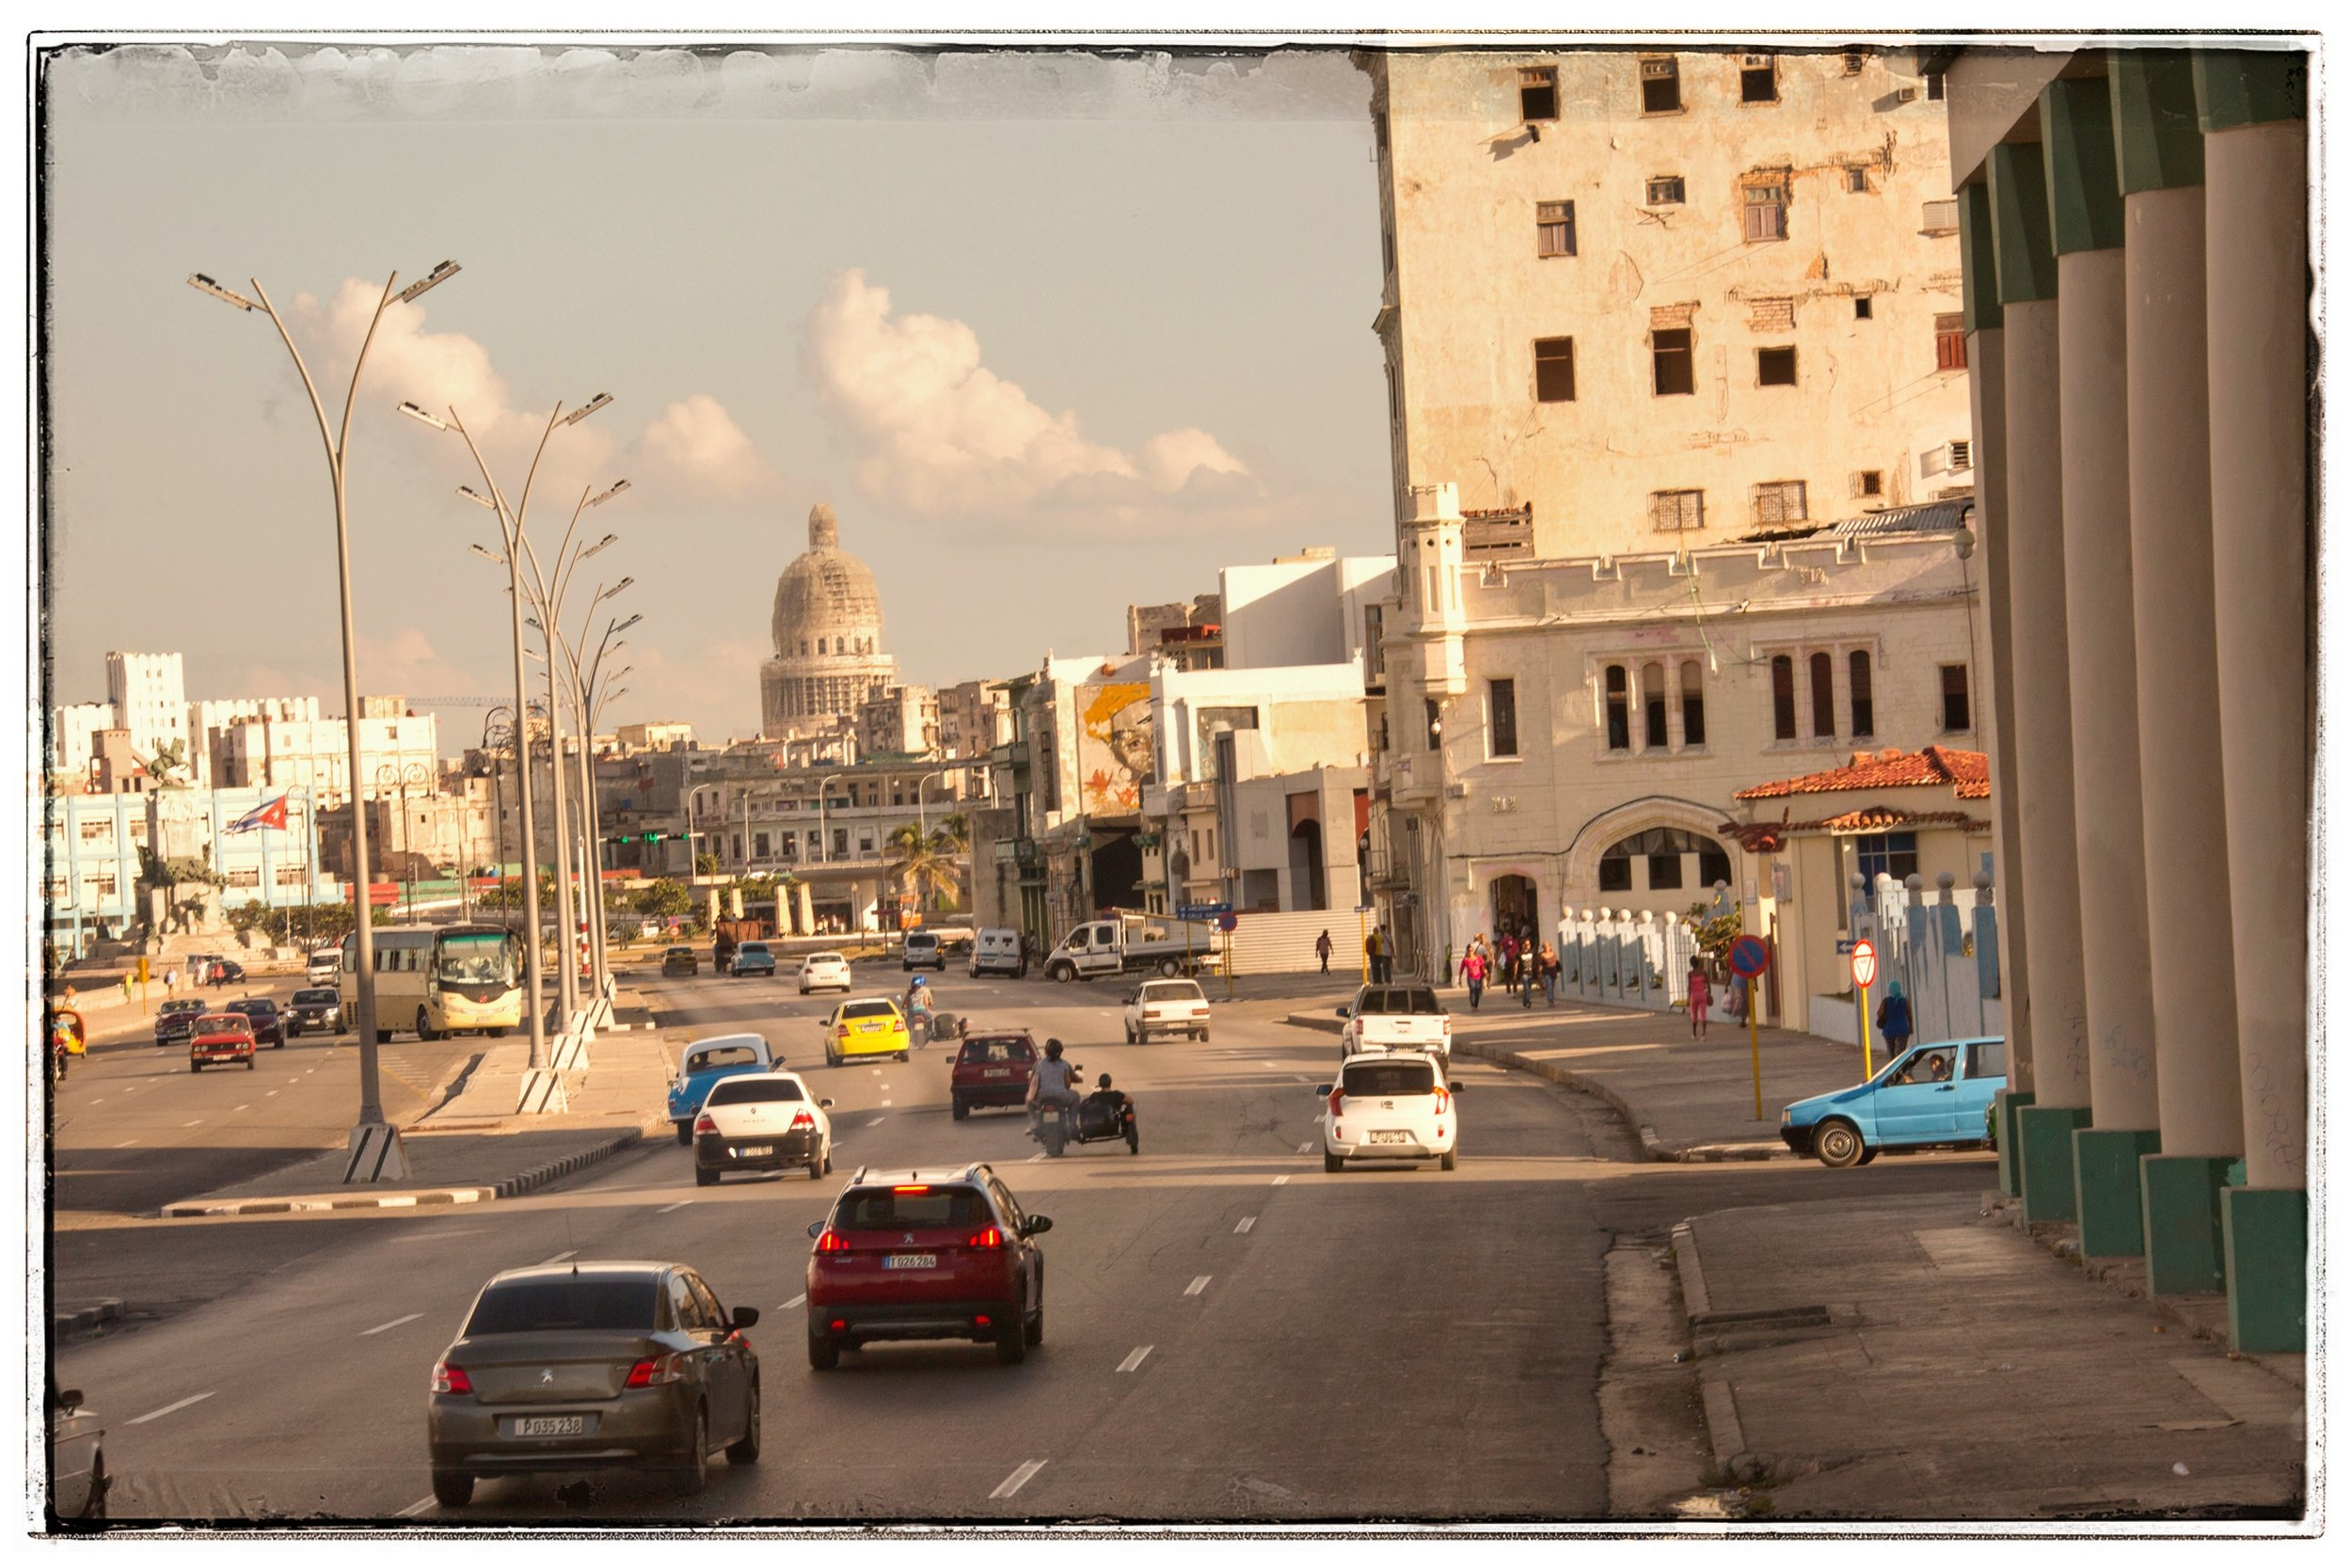 The downtown center part of Havana.